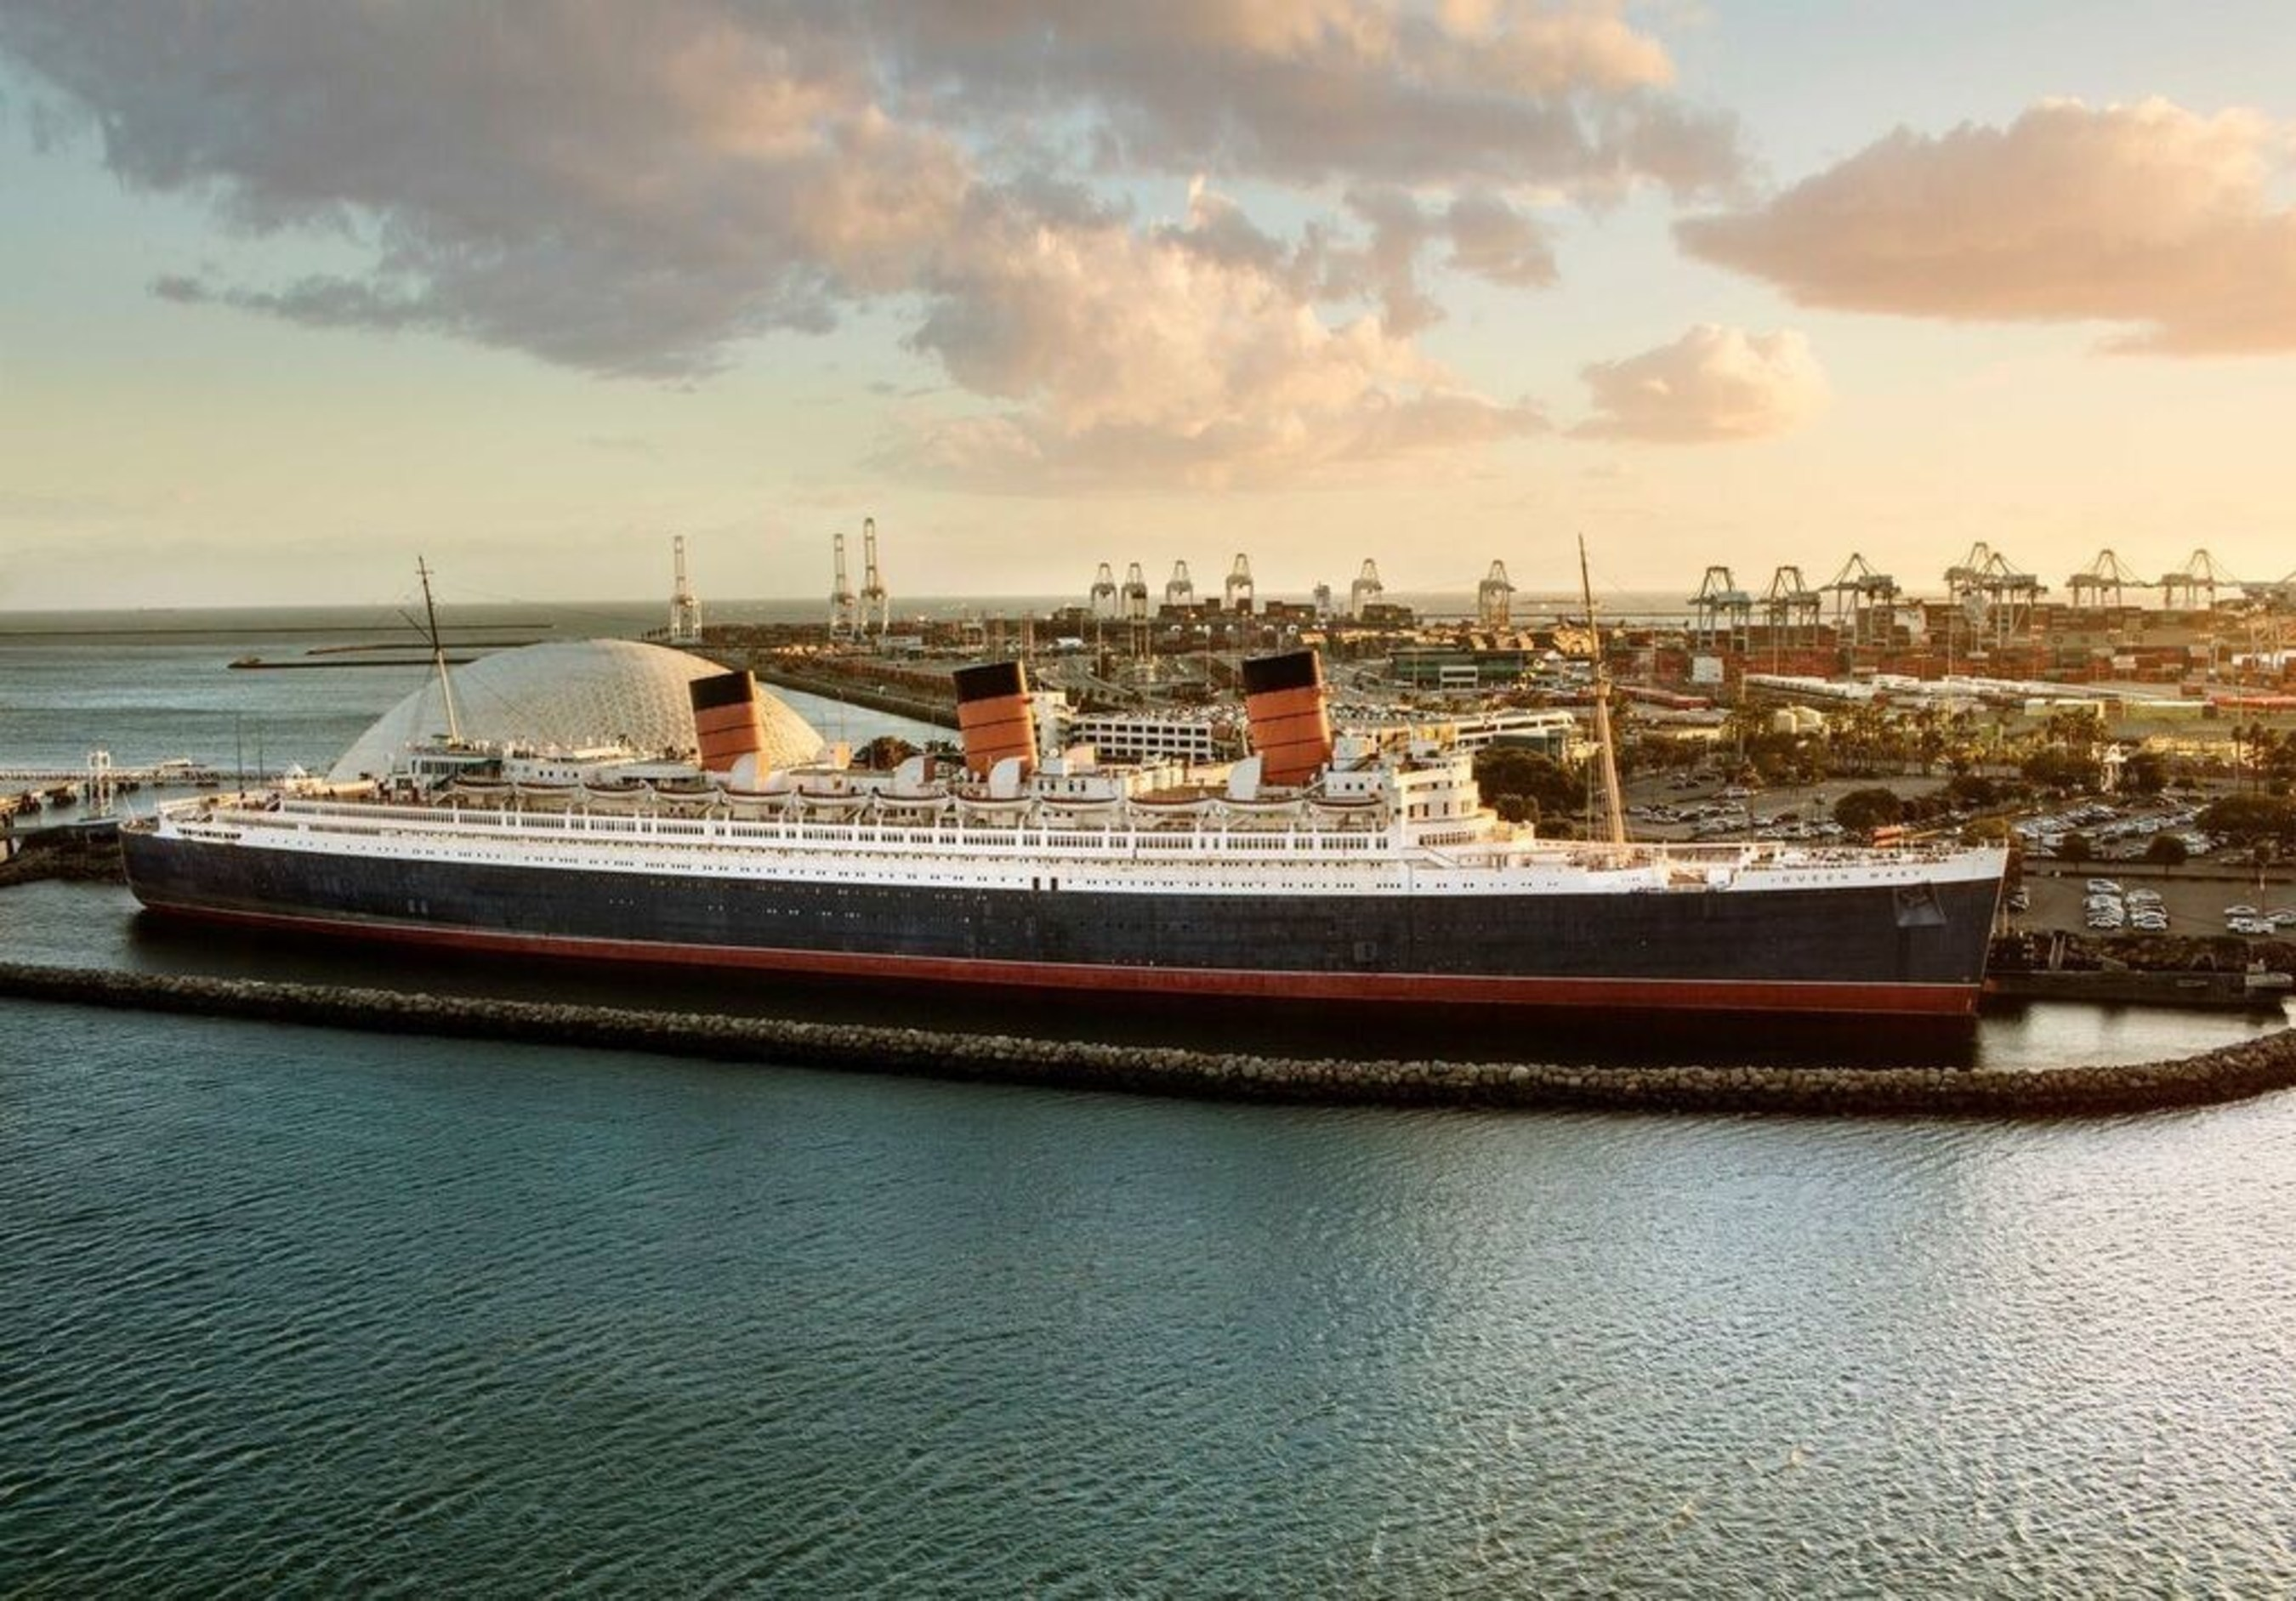 Queen Mary in Long Beach, CA, Courtesy of Allen Kennedy Photography